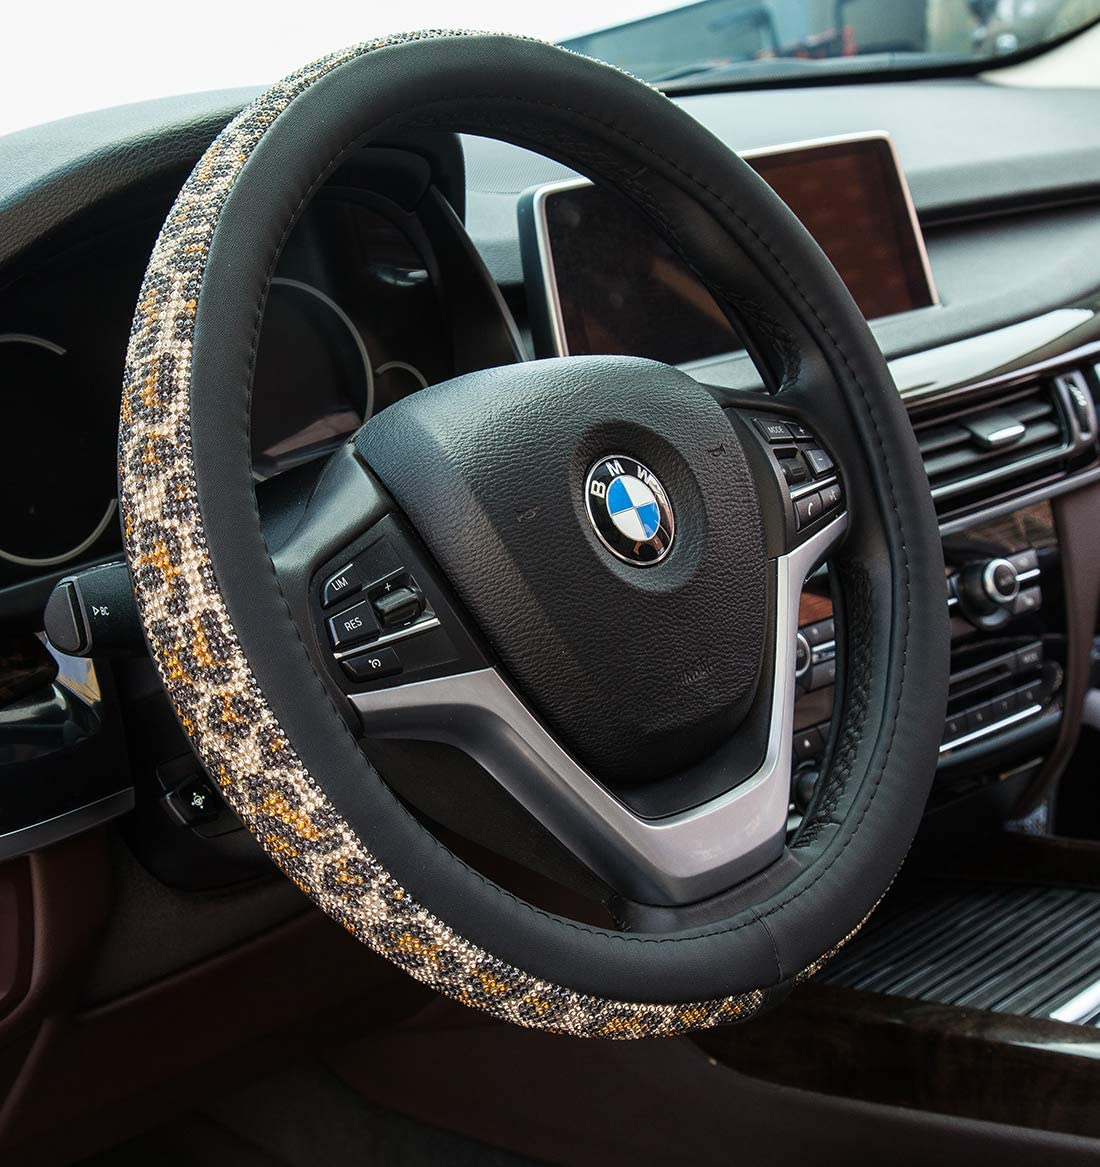 Semoss Comfort Grip Steering Wheel Cover Genuine Leather,Safe and Anti Slip,38cm 15 inch Brown and Black